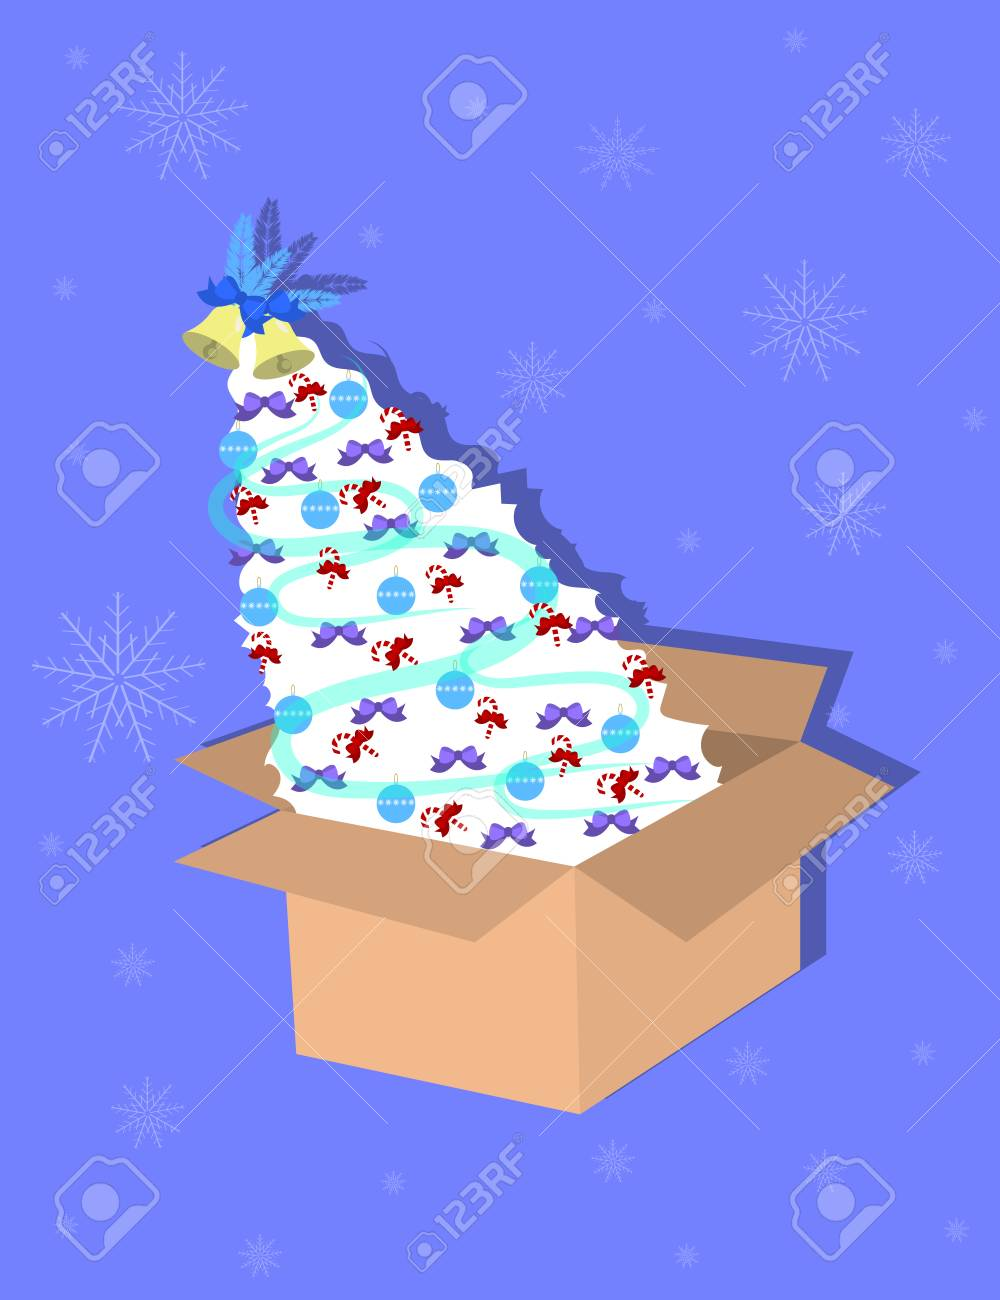 Christmas Tree In The Cardboard Box Vector Illustration Royalty Free